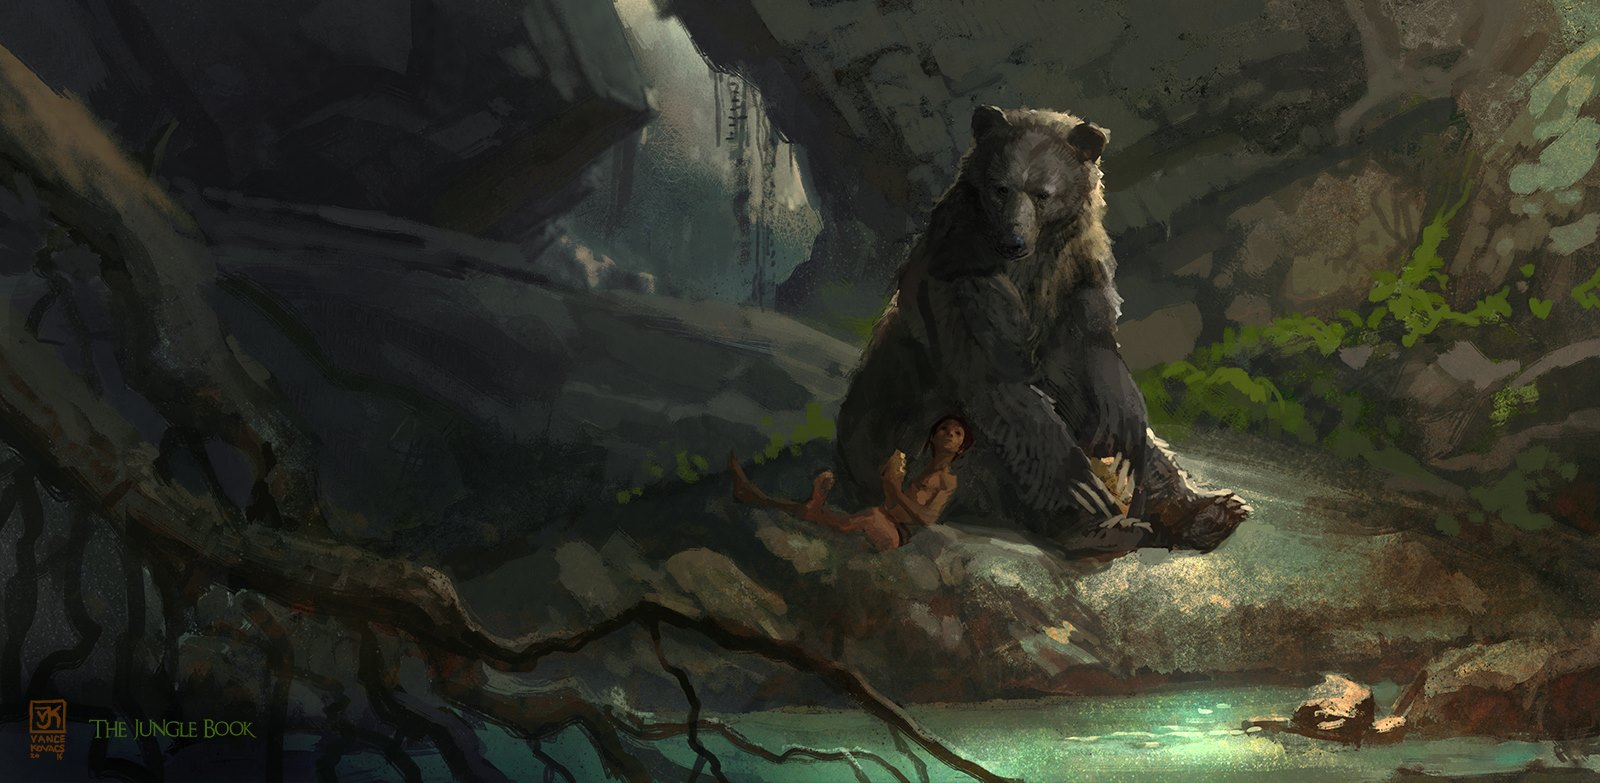 The Jungle Book Concept Art by Vance Kovacs